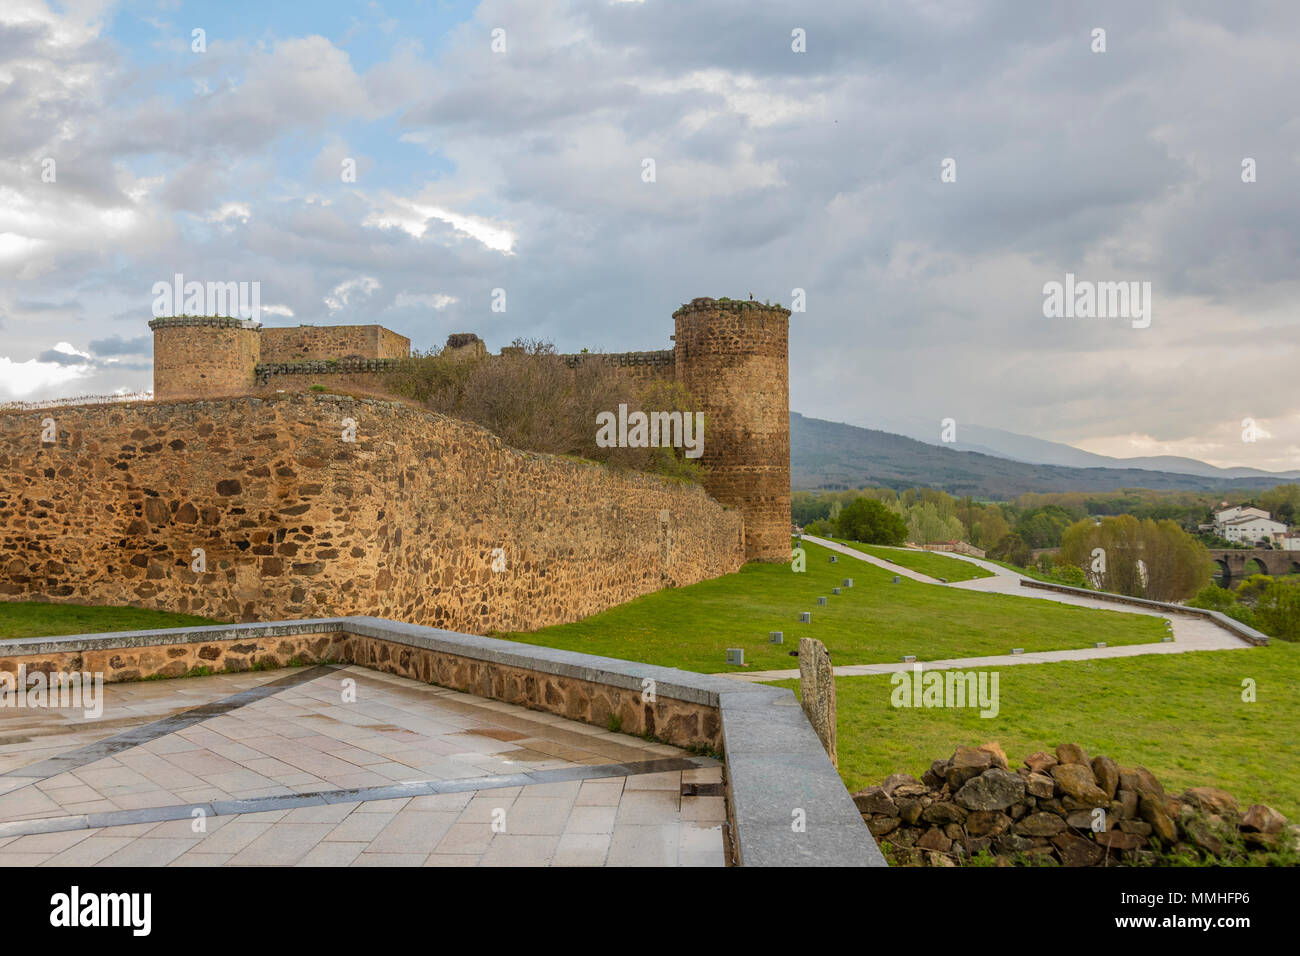 View of the castle of the city of El Barco or Valdecorneja castle built in the 12th century and rebuilt in the 15th century. Community of Castilla la  Stock Photo